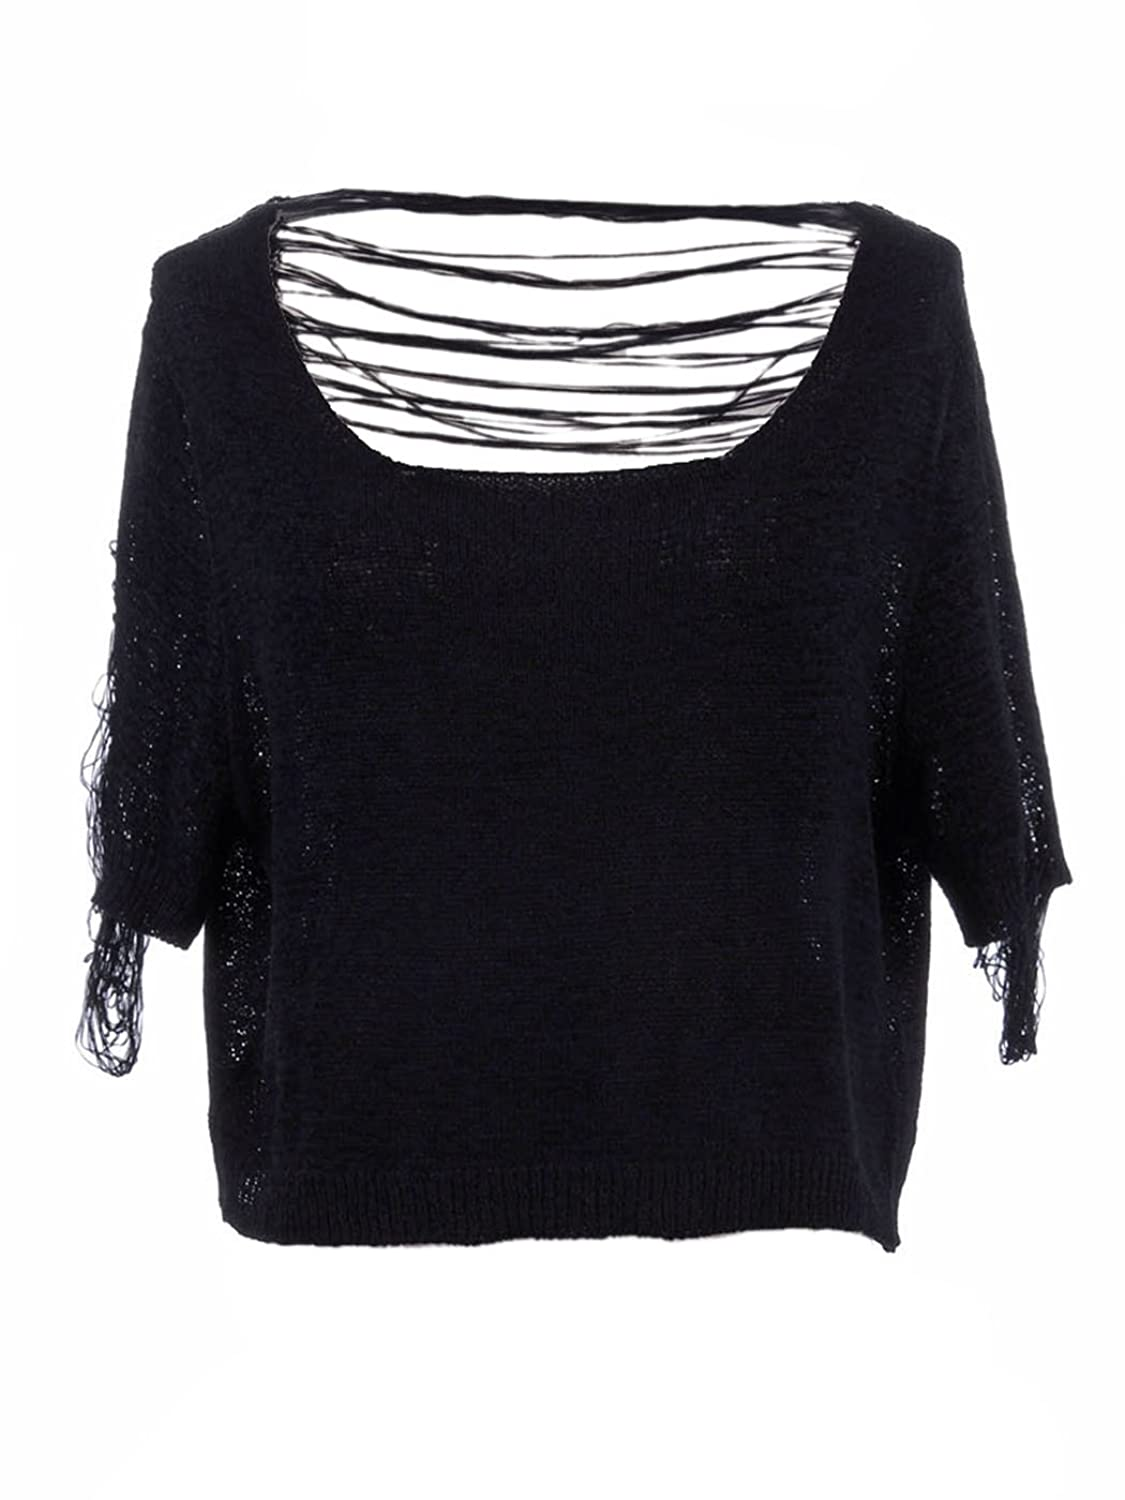 Anna-Kaci S/M Fit Black Low Dip V Back Unraveled Thread Woven Crop Waist Sweater